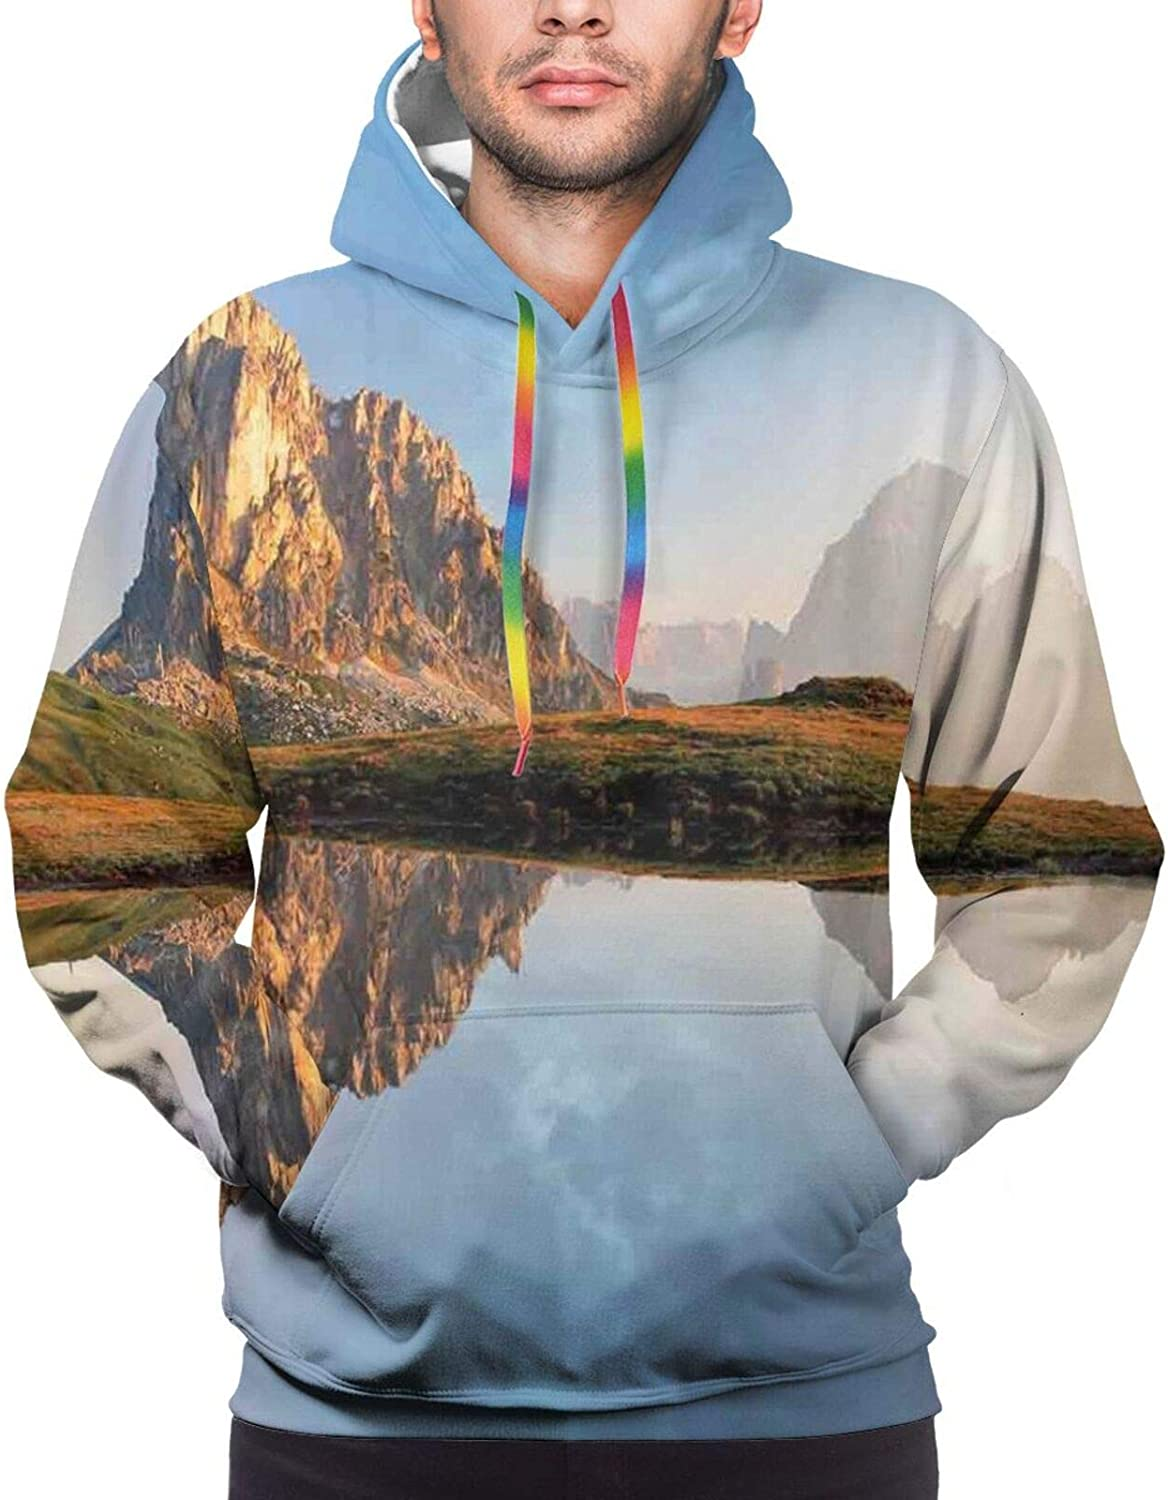 Men's Hoodies Sweatshirts,Rainbow On A Meadow with Road and Trees Starburst Stripes in The Sky Spring Season